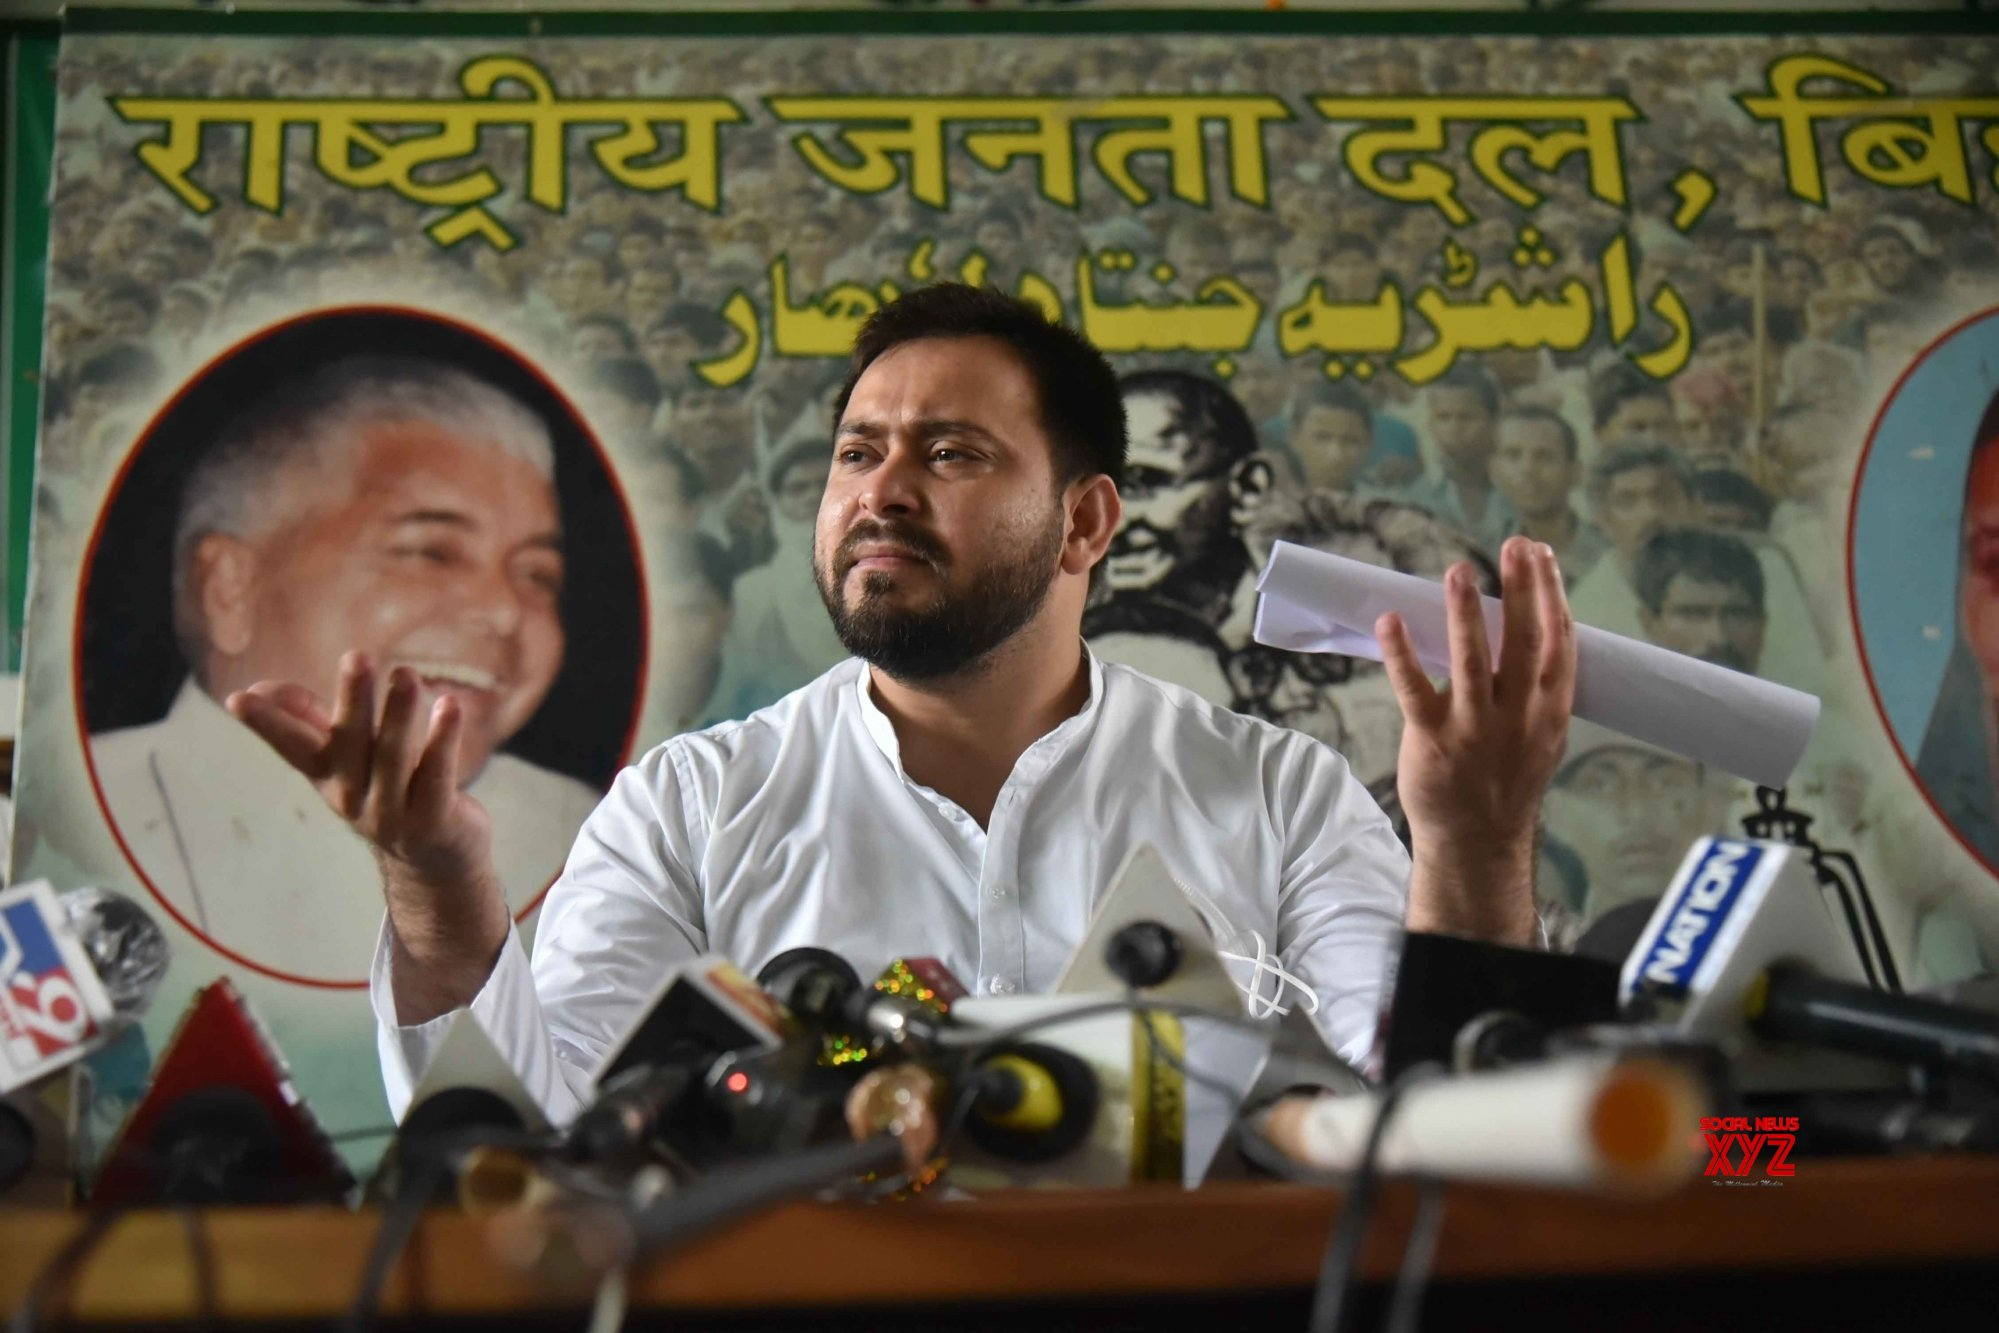 Patna: Tejashwi Yadav's press conference #Gallery